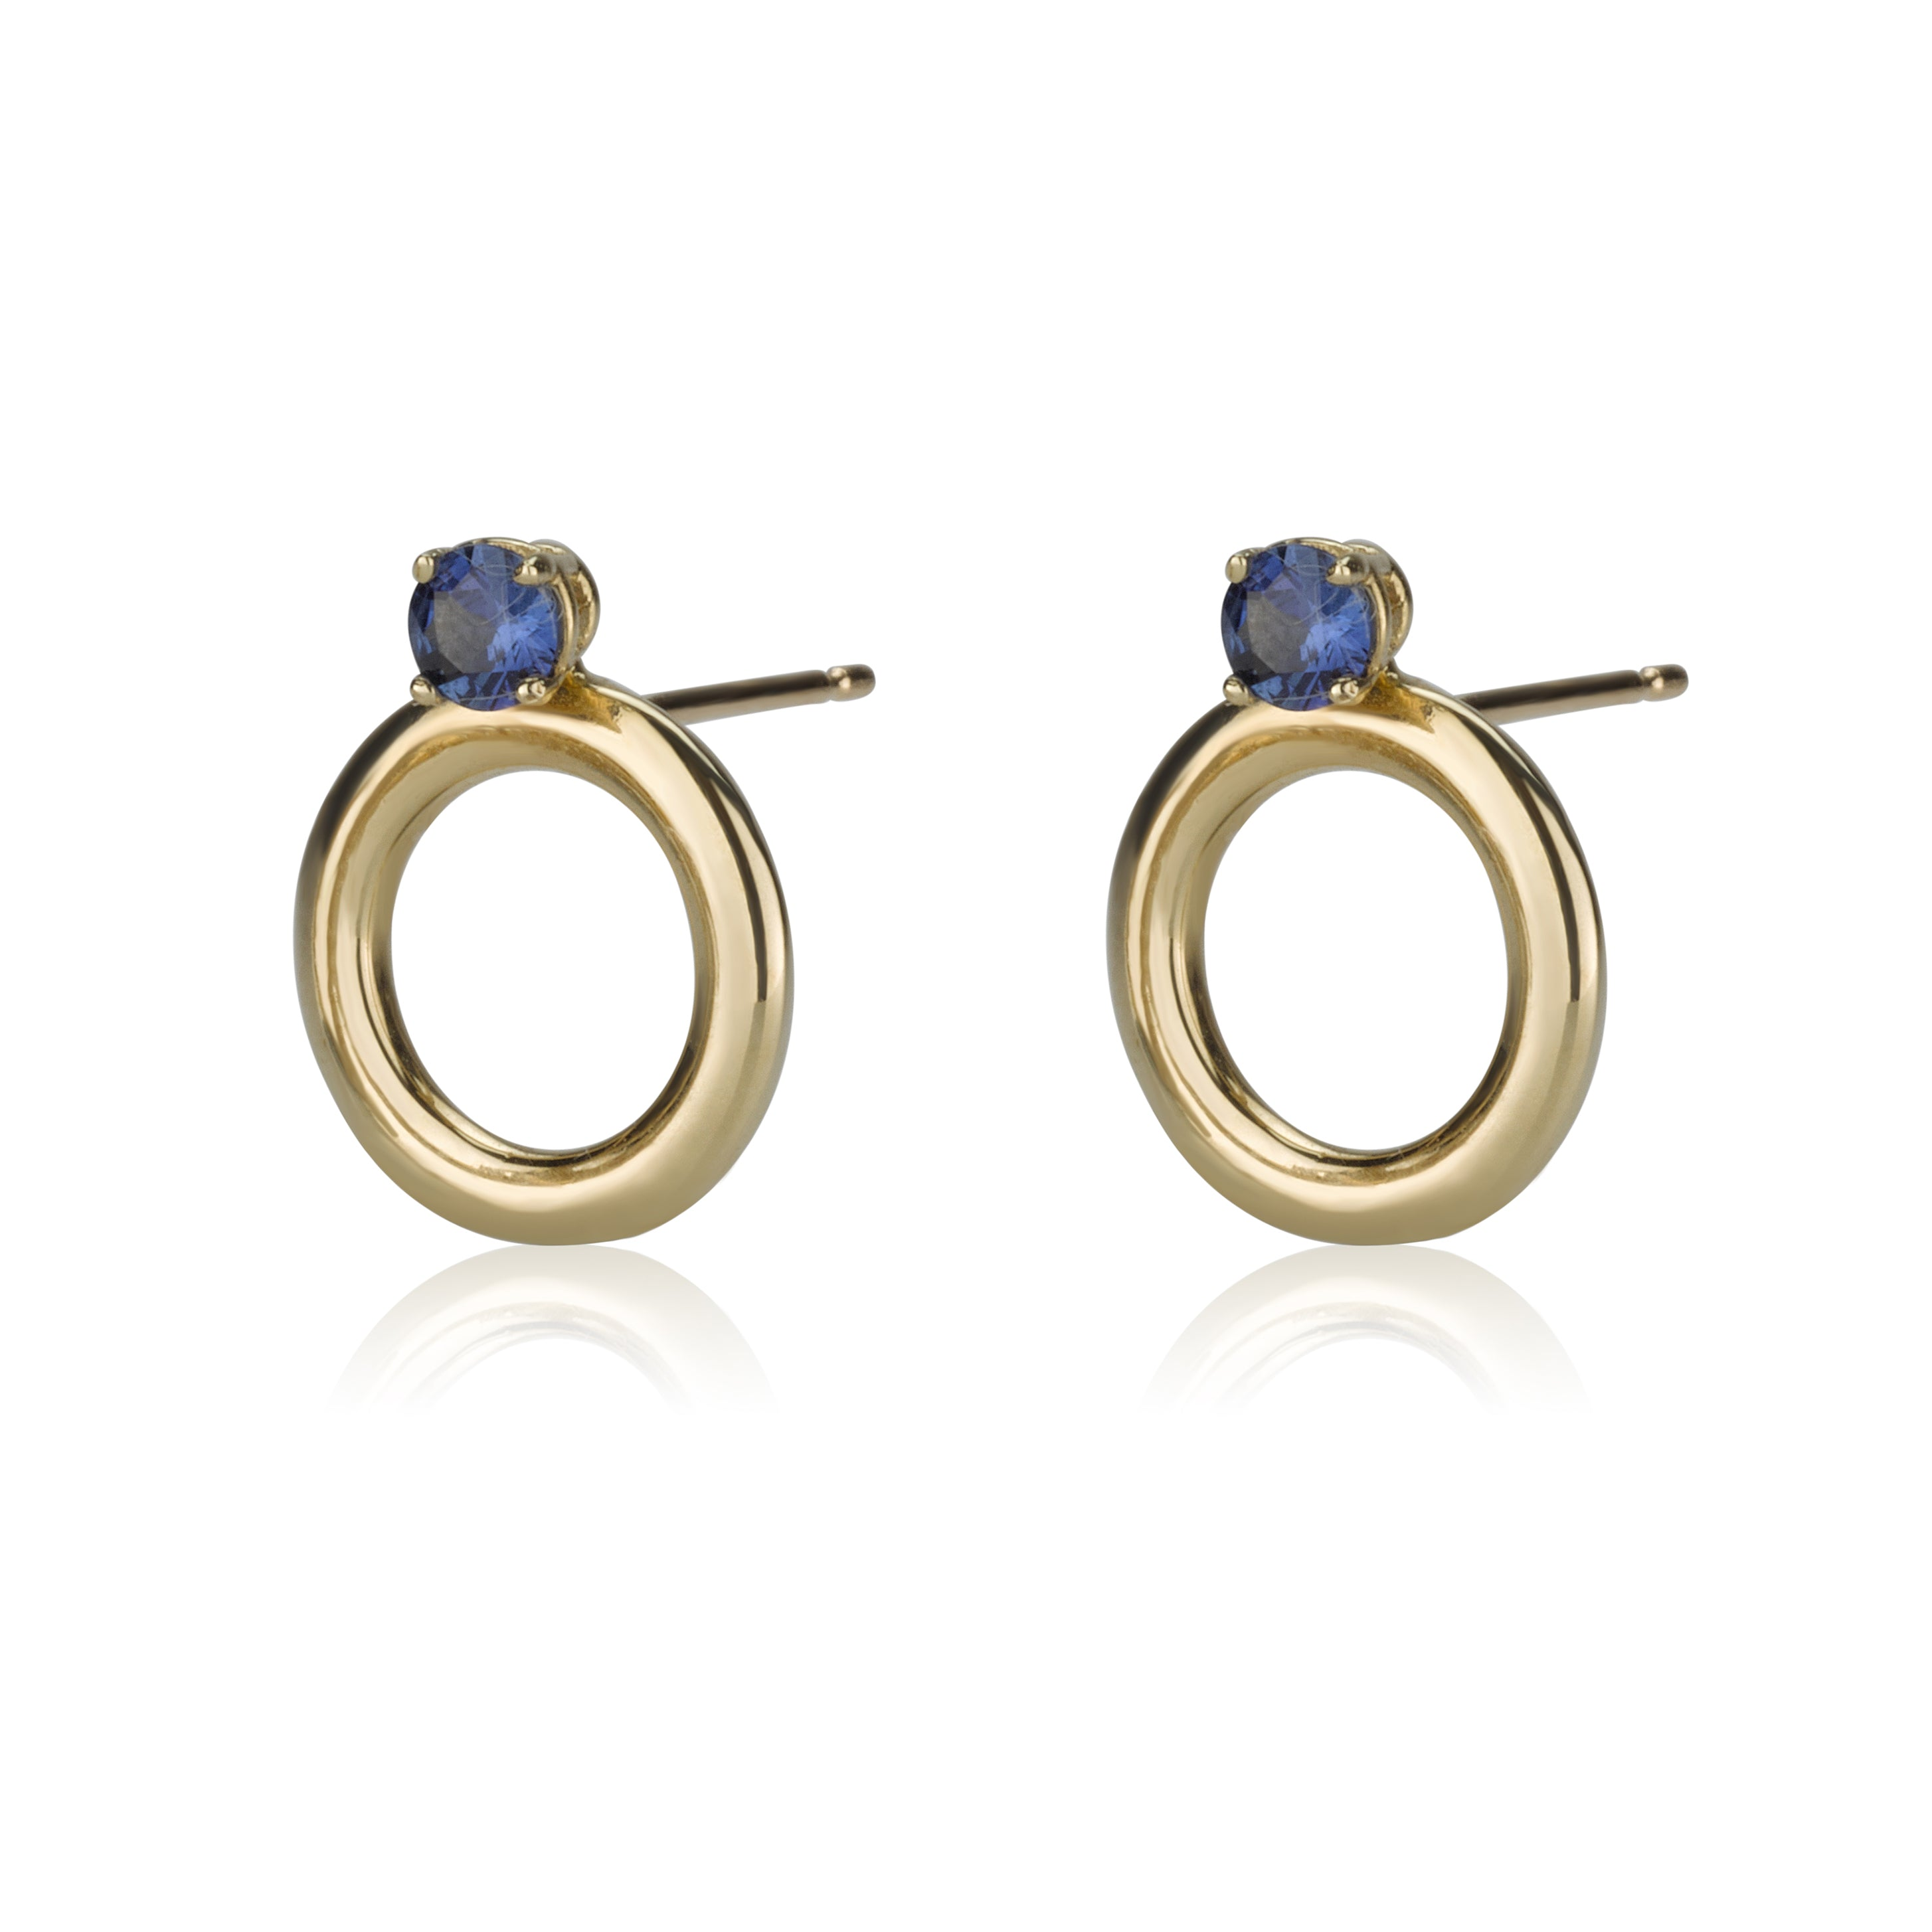 Perfectly Round Earrings With Sapphires